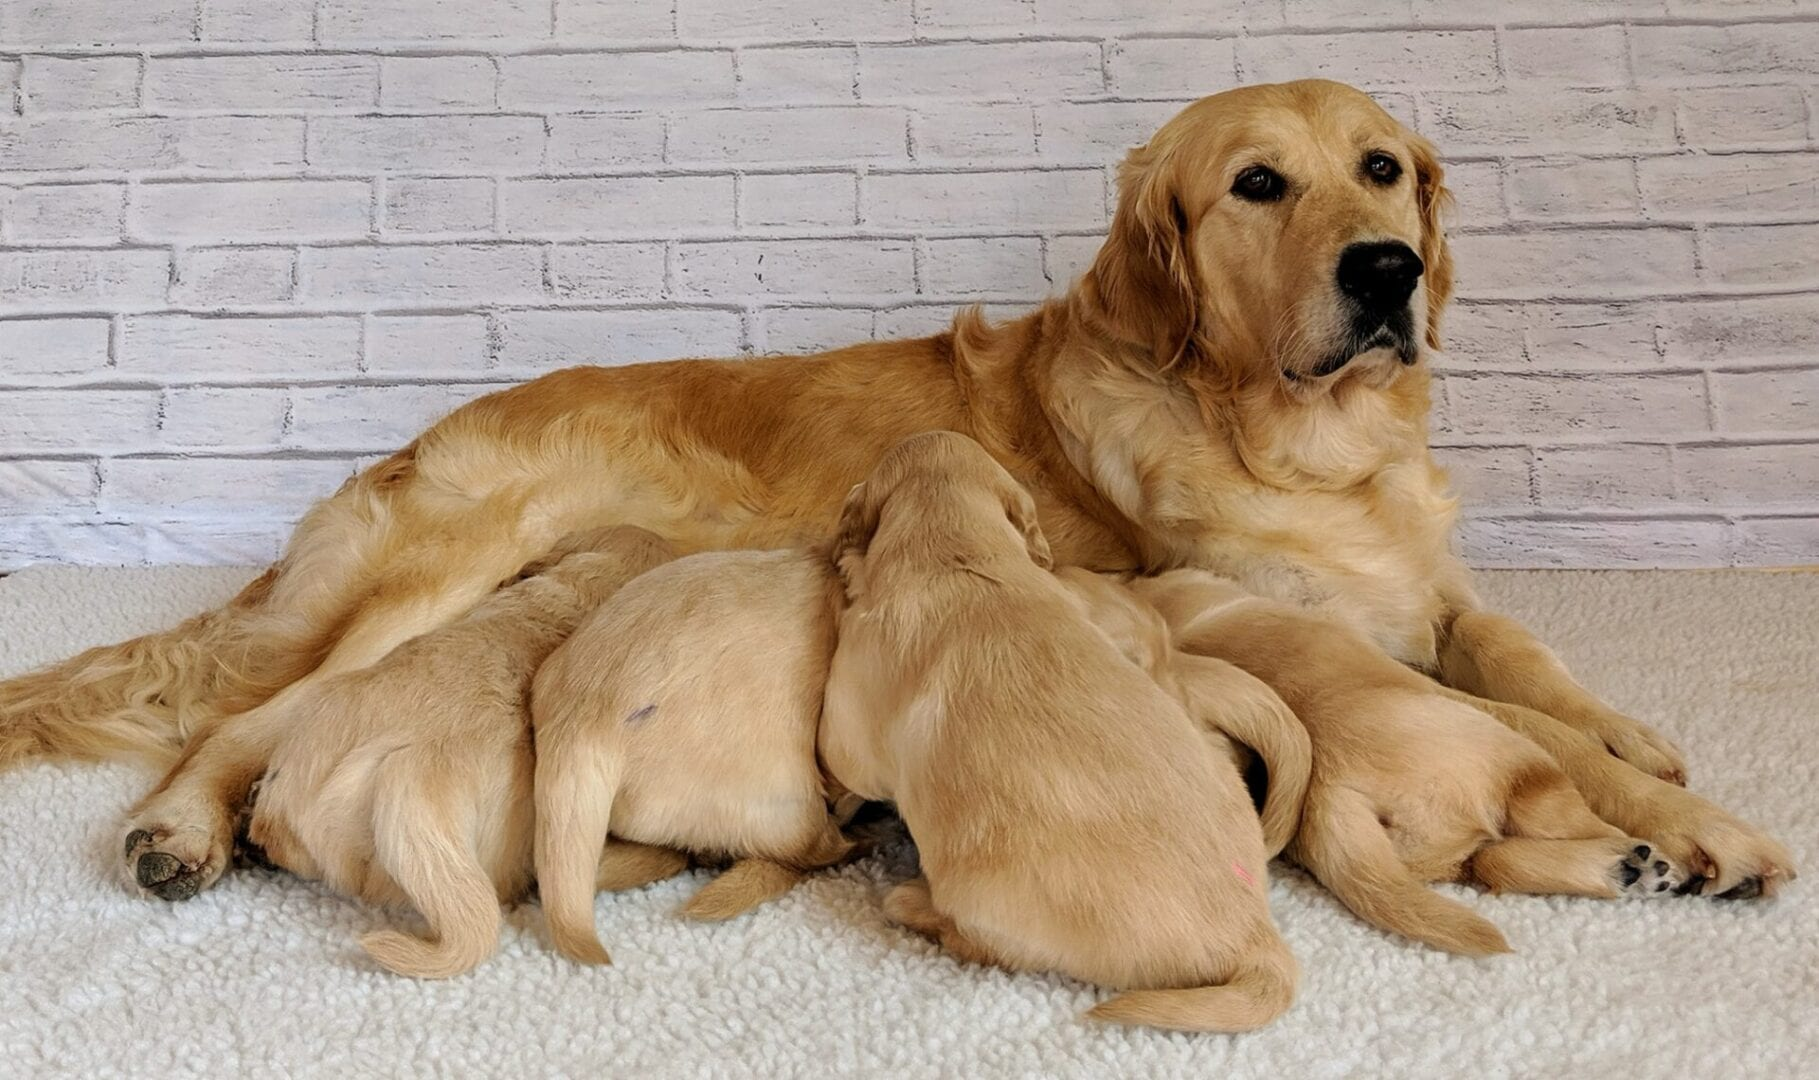 FOR PUPPY POLICY PAGE